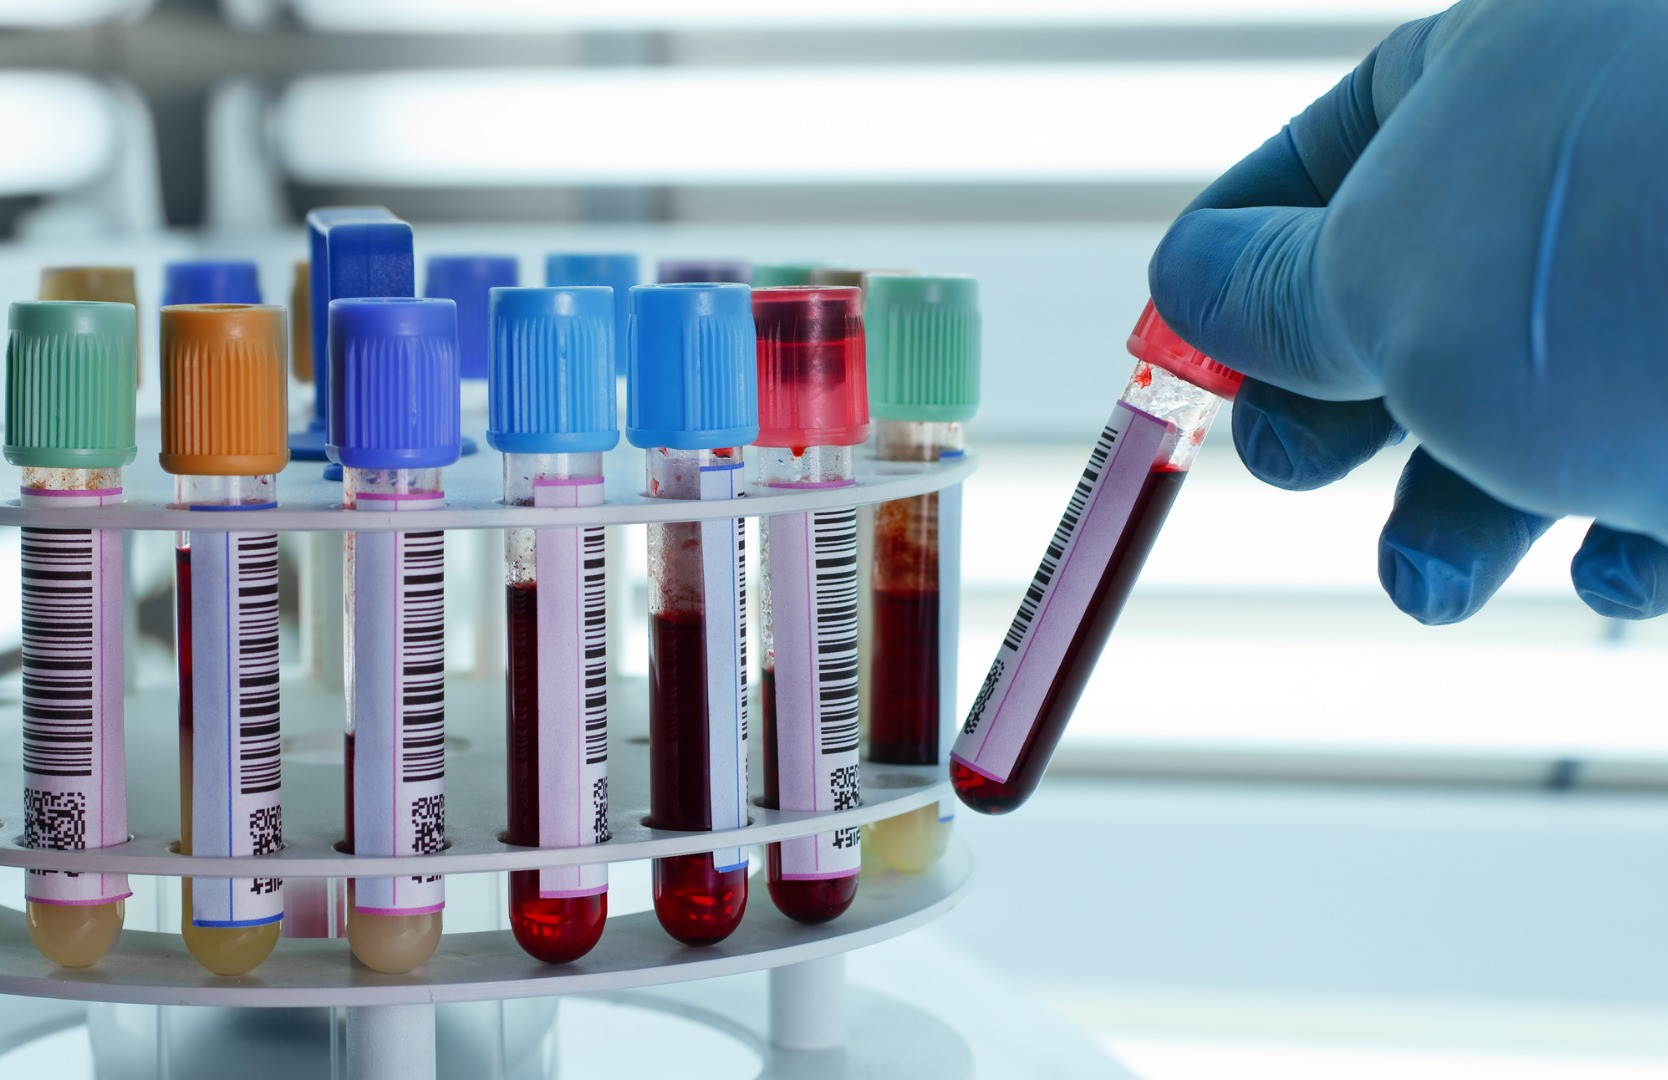 New Study Adds Key Piece To Autism >> Potential Blood And Urine Test For Autism Greeted With